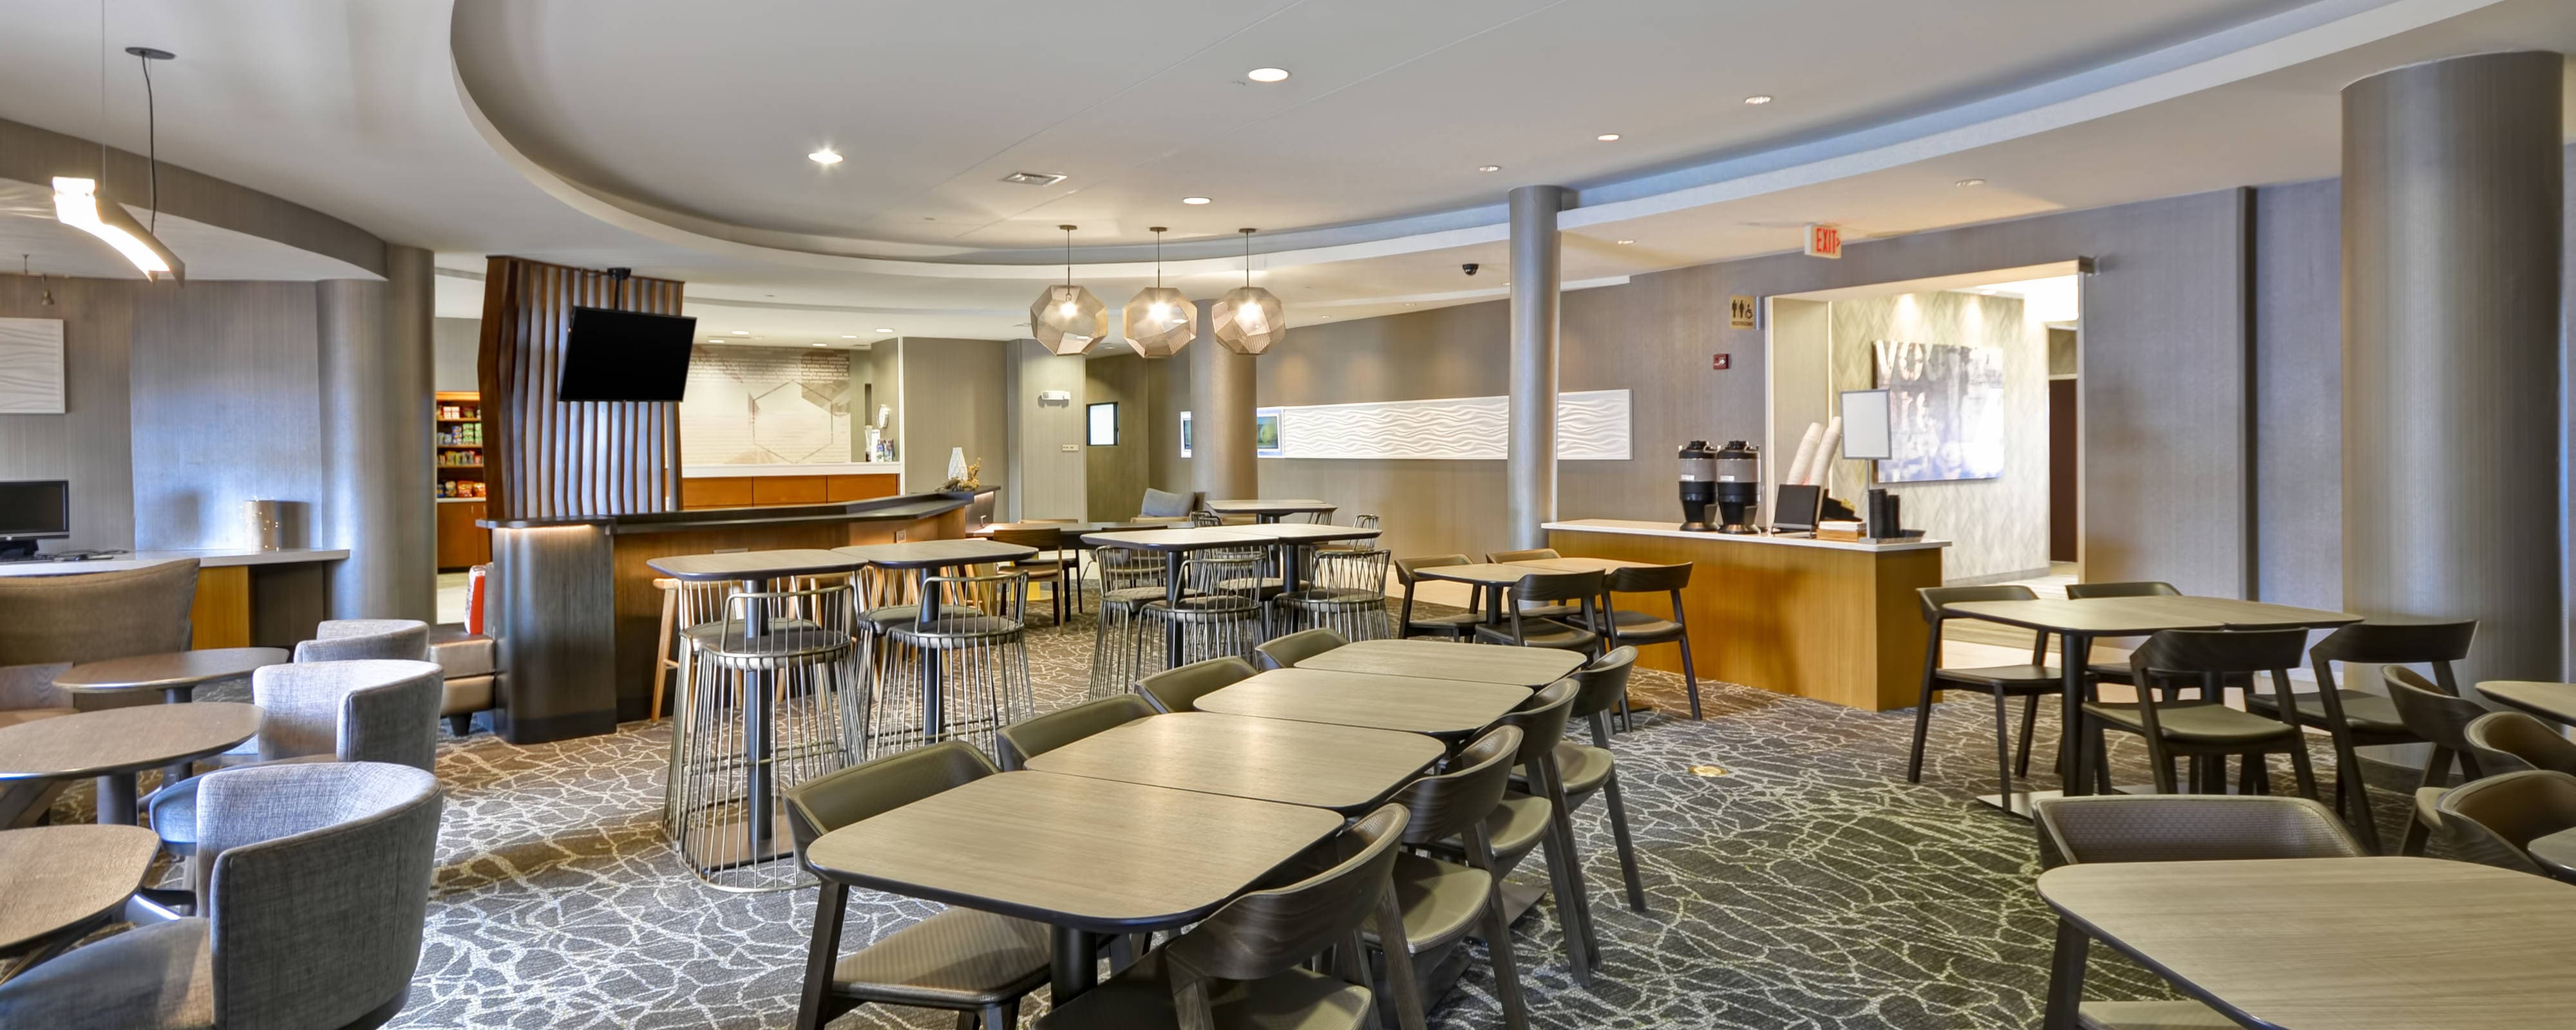 hotels in lexington ky with free breakfast springhill. Black Bedroom Furniture Sets. Home Design Ideas